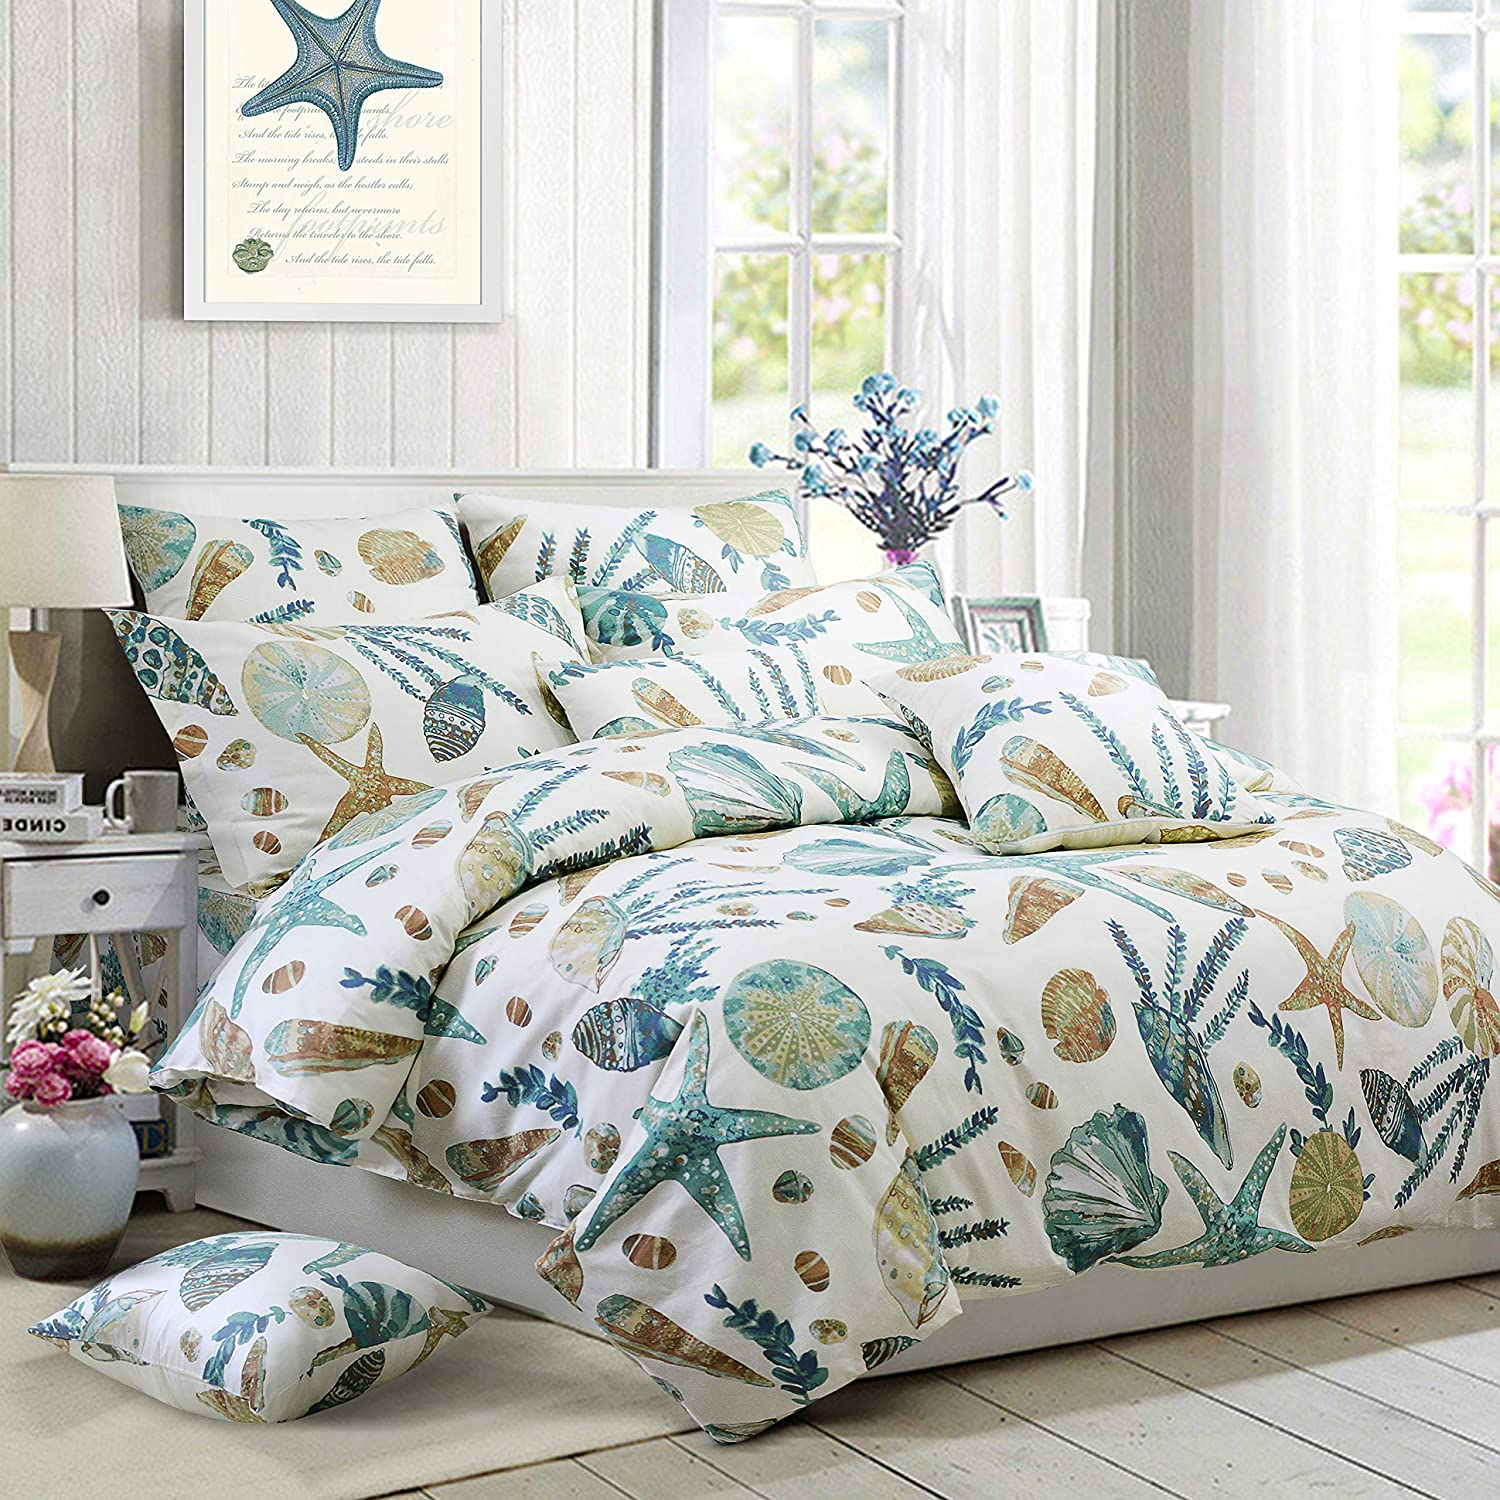 FADFAY Duvet Cover Set Beach Themed Bedding Sets 100% Cotton Super Soft Coastal Bedding White Teal Seashells and Starfish Nautical Bedding with Hidden Zipper Closure 3 Pieces King/Cal King Size